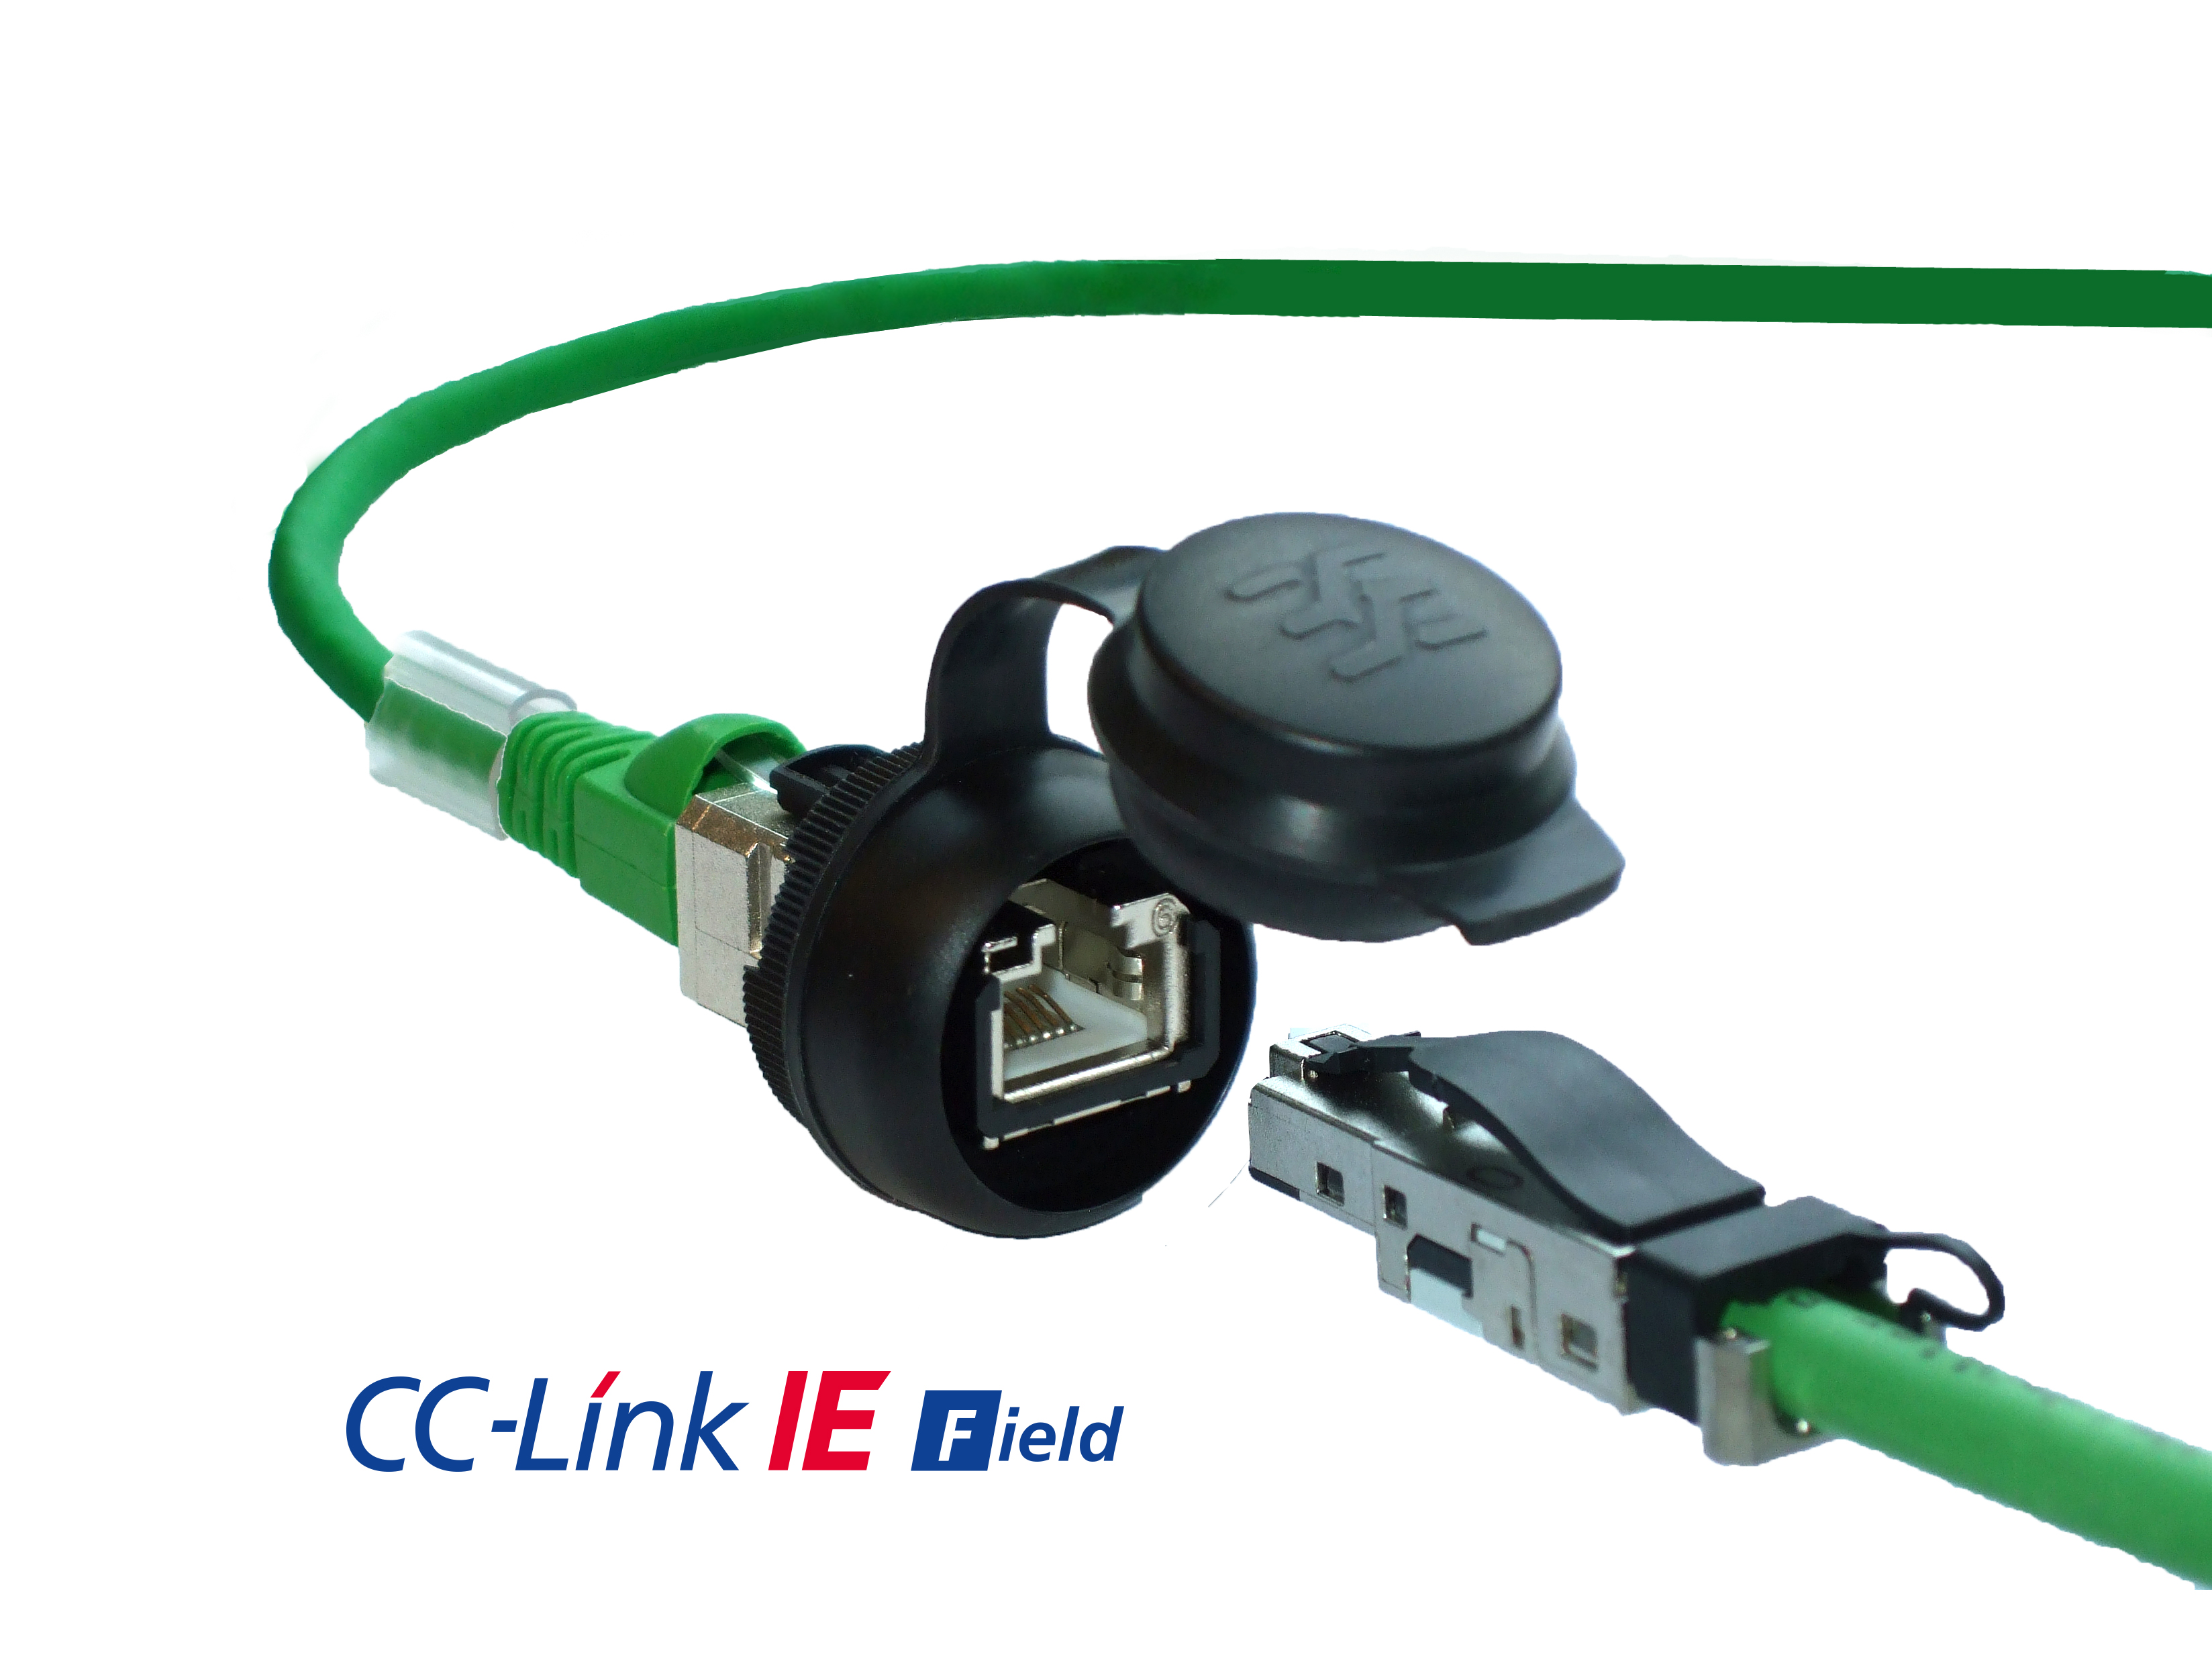 Weidmüller develops CC-Link IE connectivity products to drive Industry 4.0